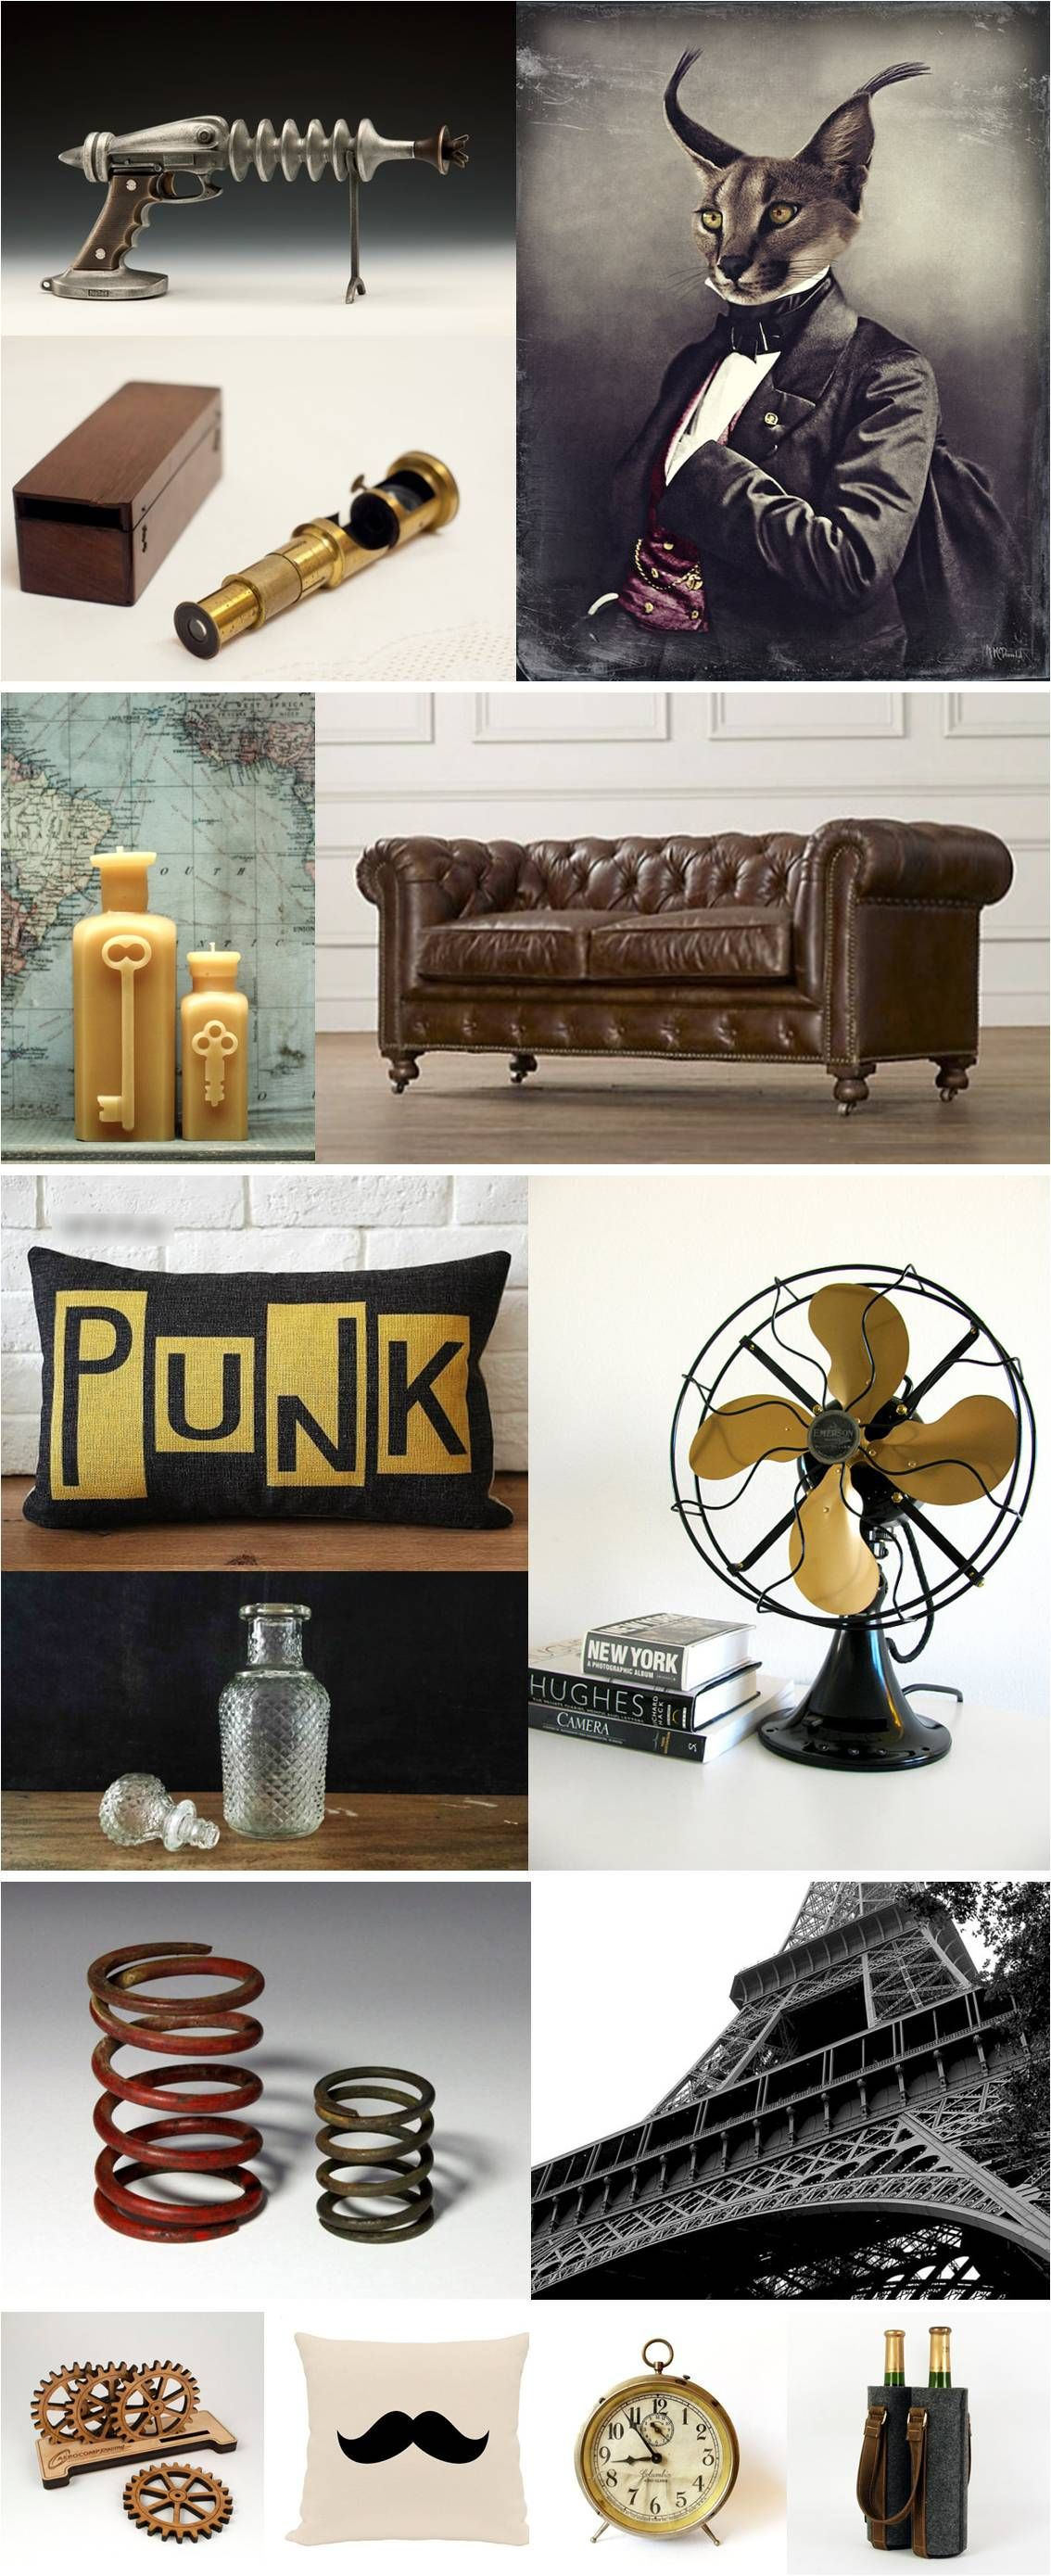 """Ck out """"STEaMPuNK StYLE"""" #Etsy finds from #atelierNo22 --------------HoMEdeCOR--------------- Victorian Industrial ...............................CLiCKonPiN to follow me on tumblr."""